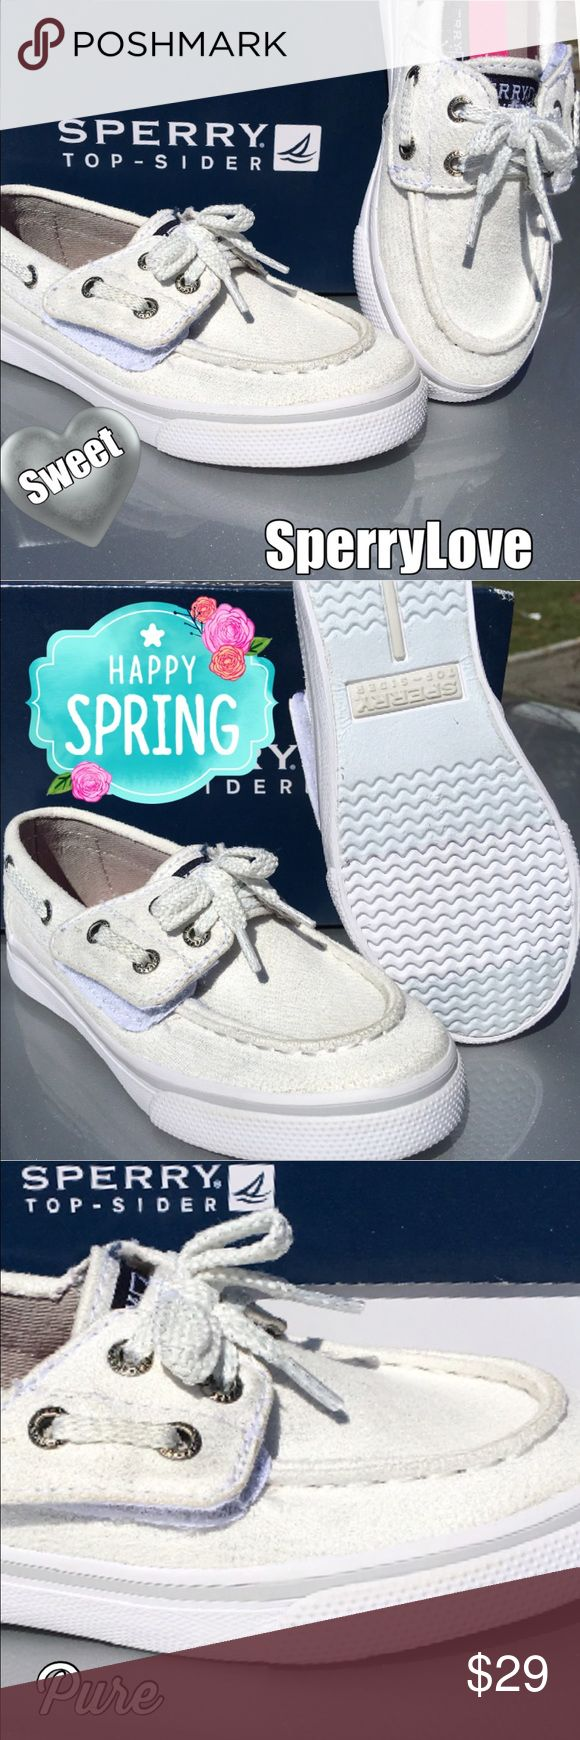 New Sperry for Little Girls Silver Sparkle  New Sperry boat shoe just so Fashion cute in silver sparkle... Little girls love them...Laces stayed tied because Velcro straps are used for easy in and off...These are precious!  Sperry Shoes Sneakers